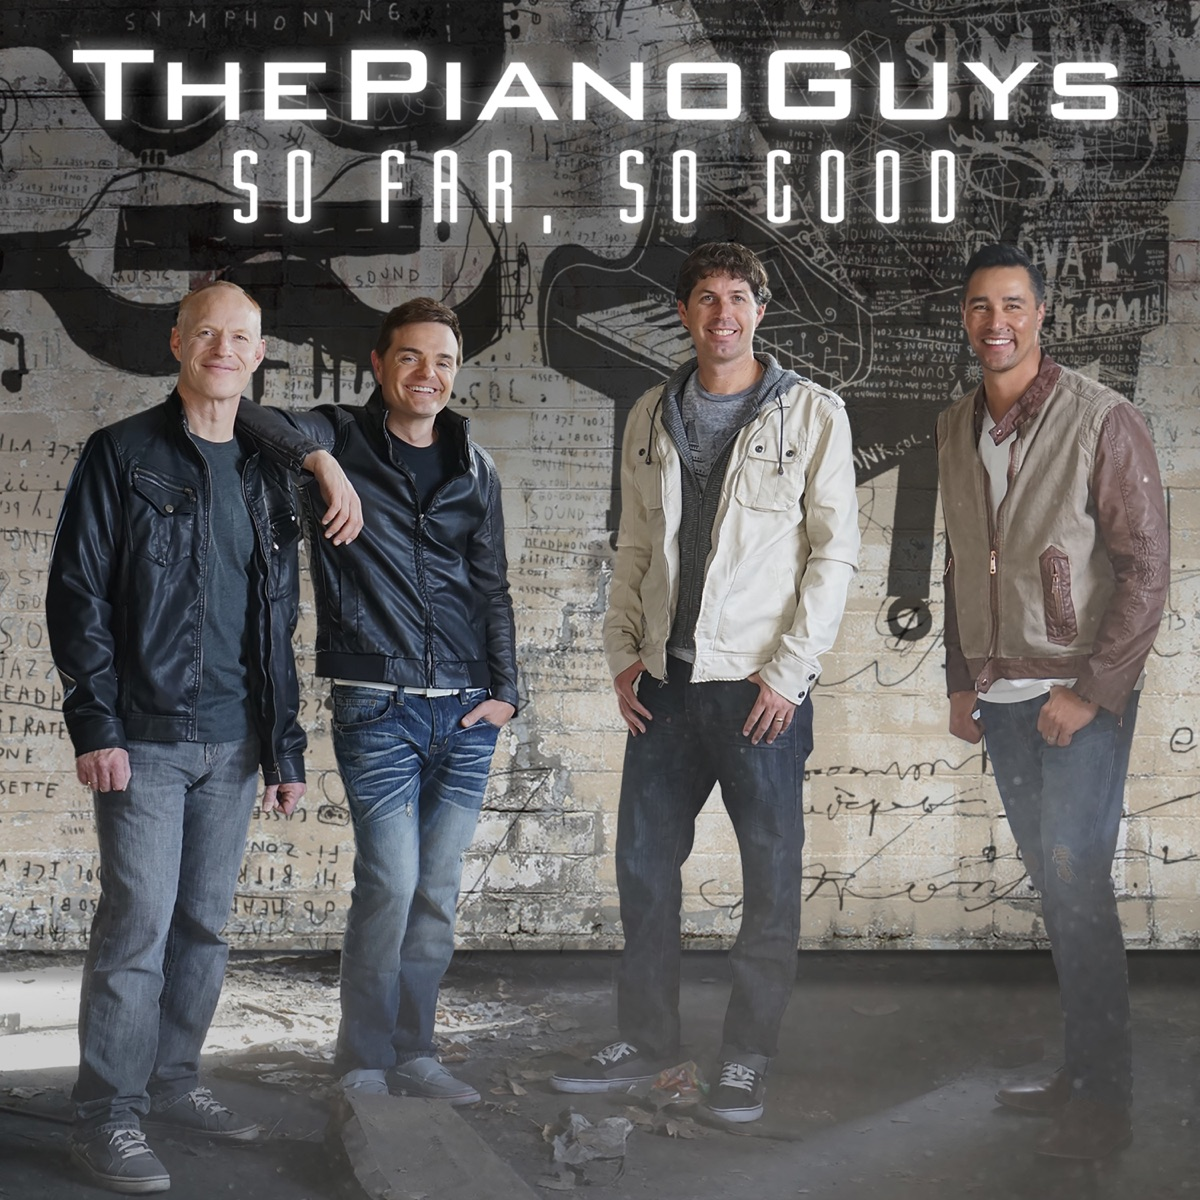 So Far So Good The Piano Guys CD cover